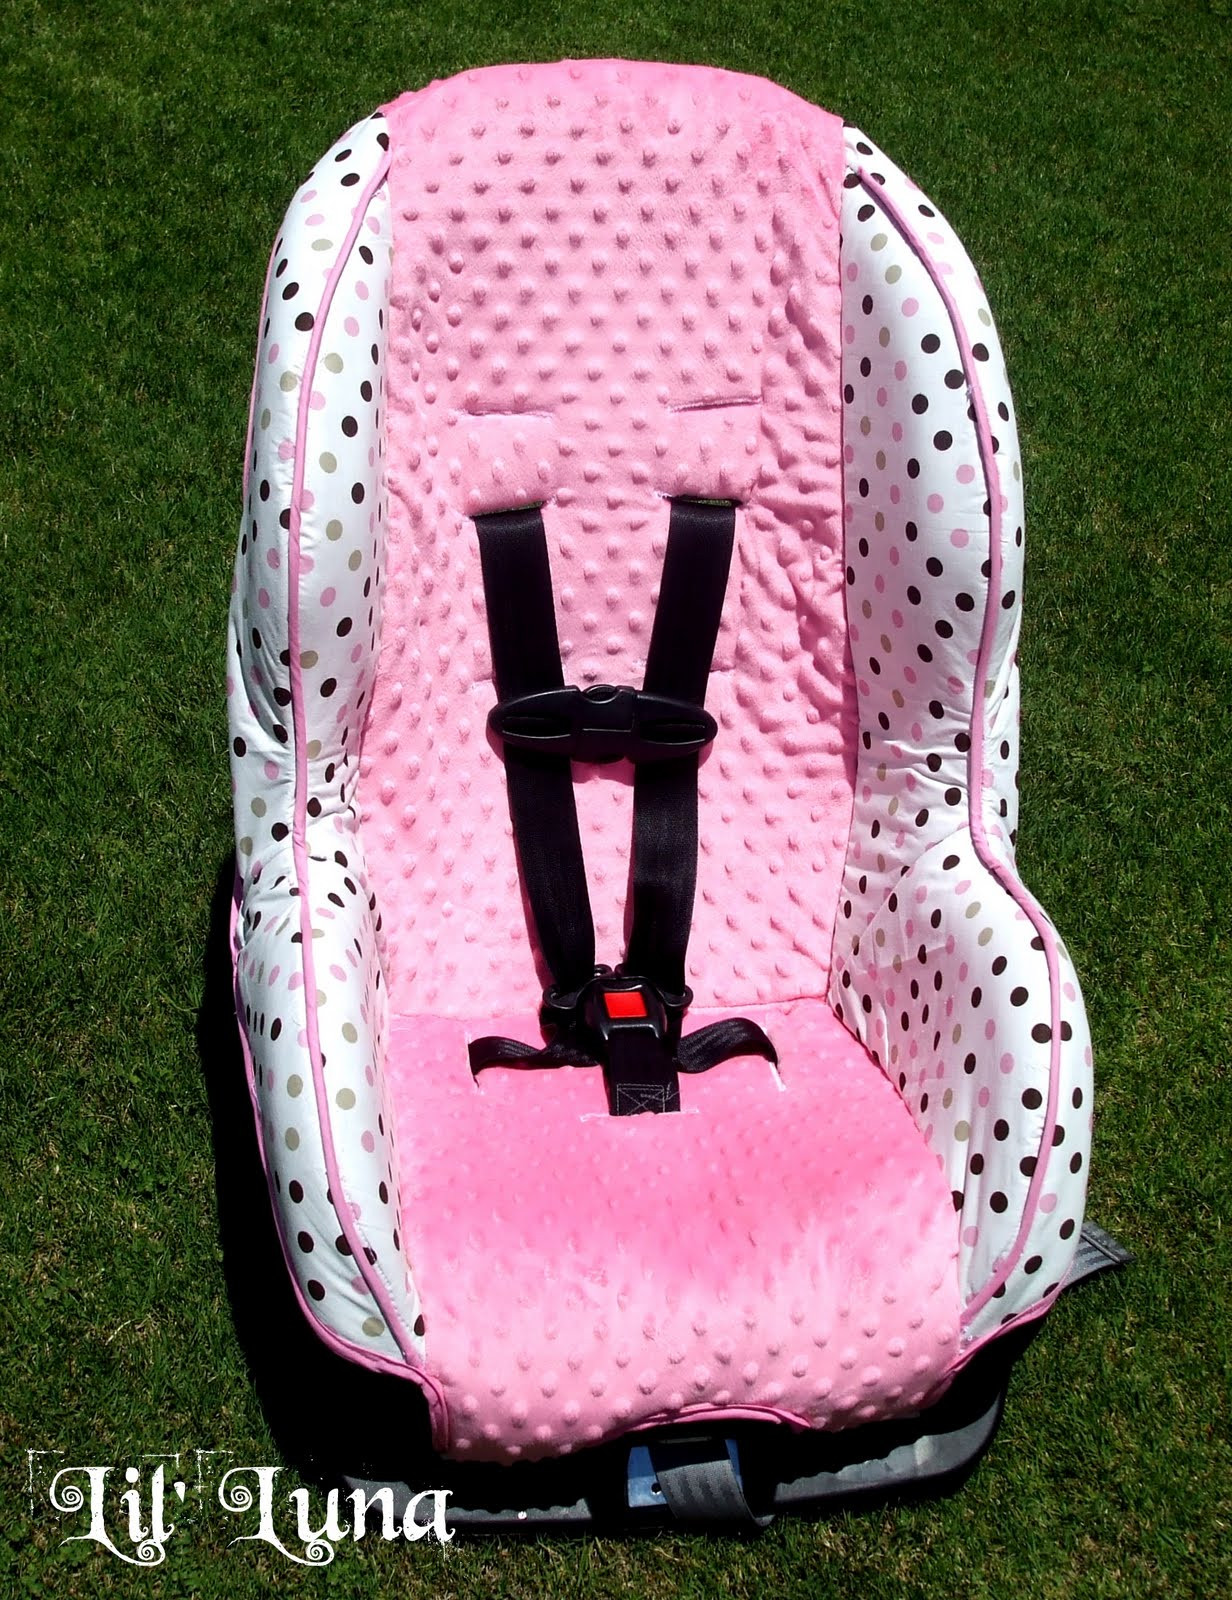 DIY Baby Car Seat Covers  75 DIY Gifts For Kids